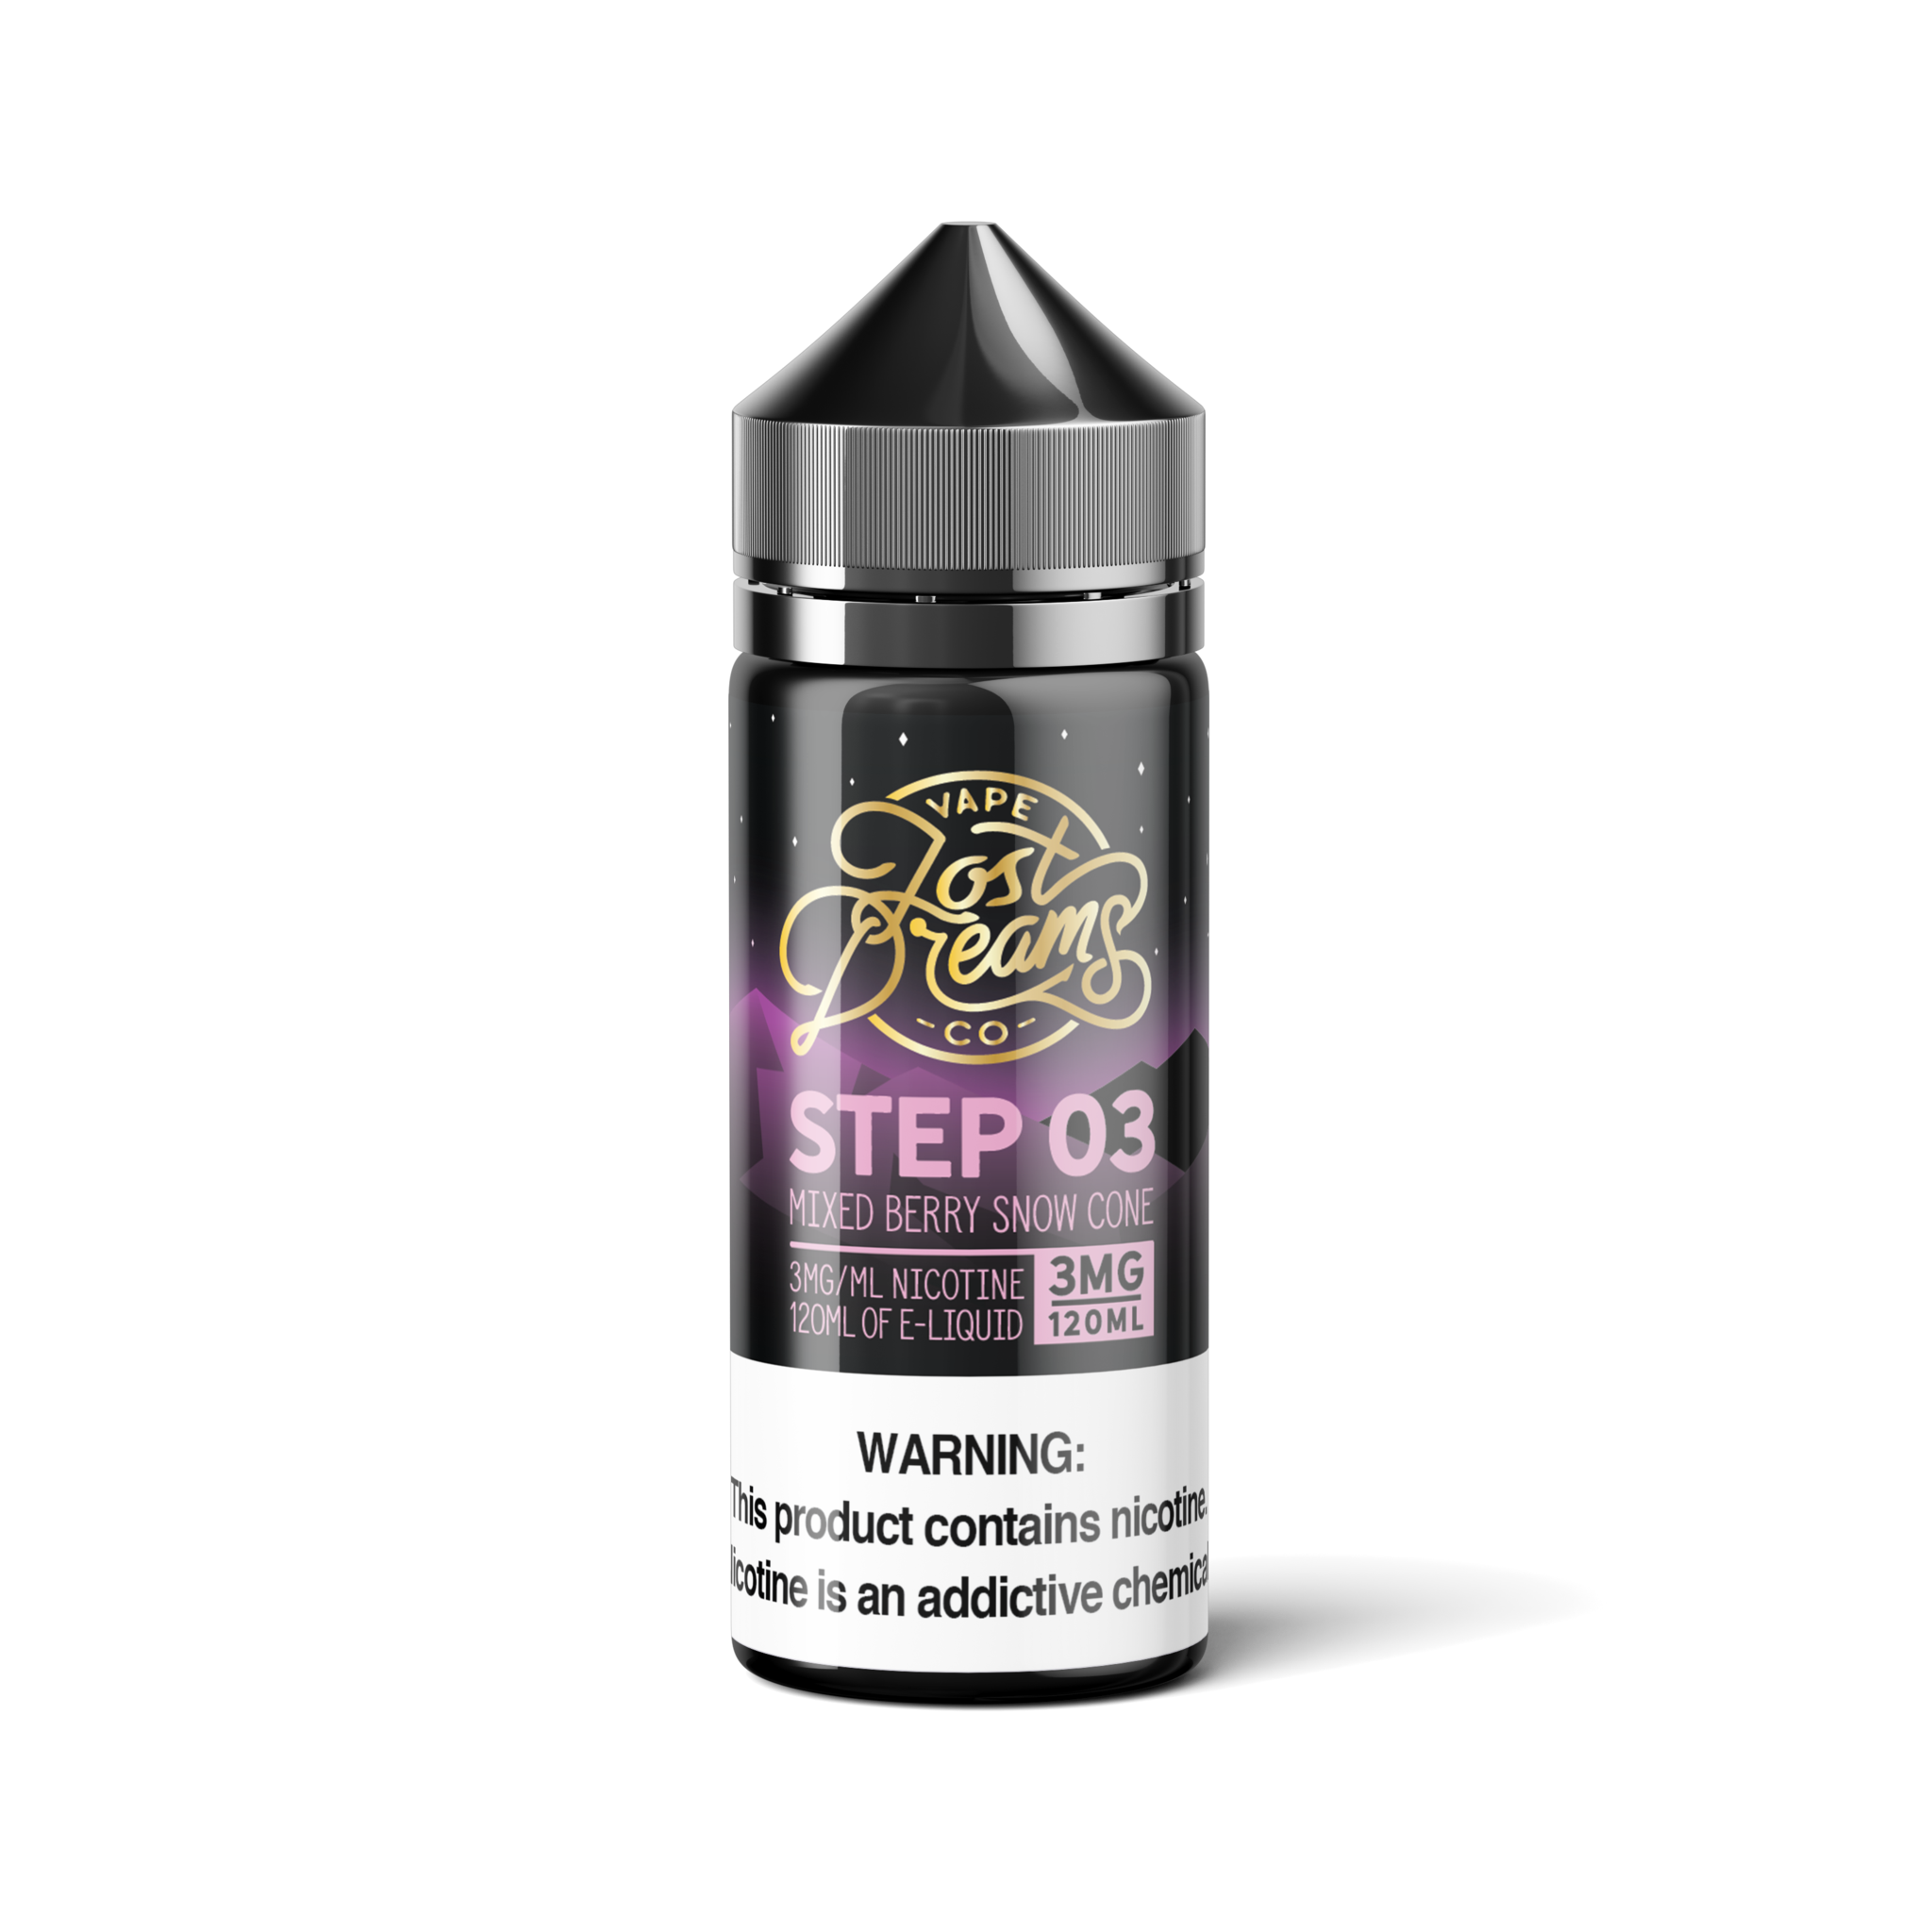 Lost Dreams Vape Co. - Step 03 (Mixed Berry Snow Cone)